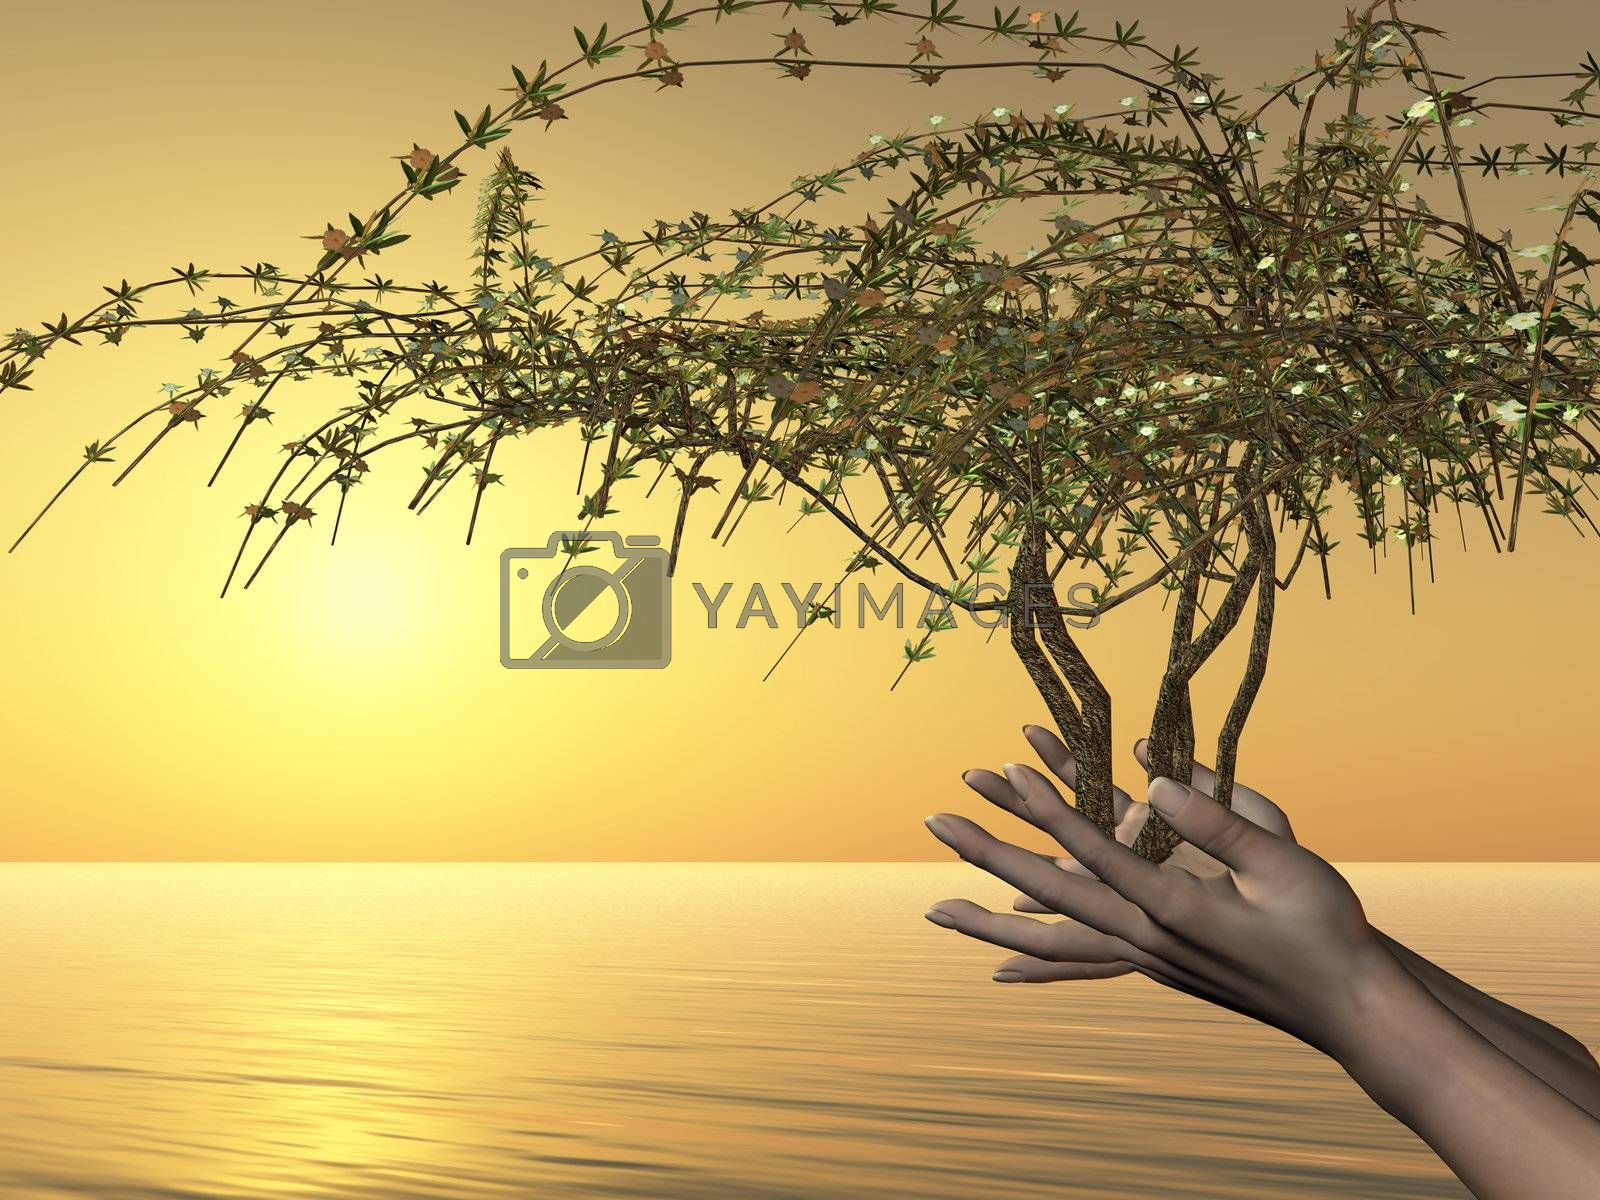 Human hands hold the gift of life in tree form.